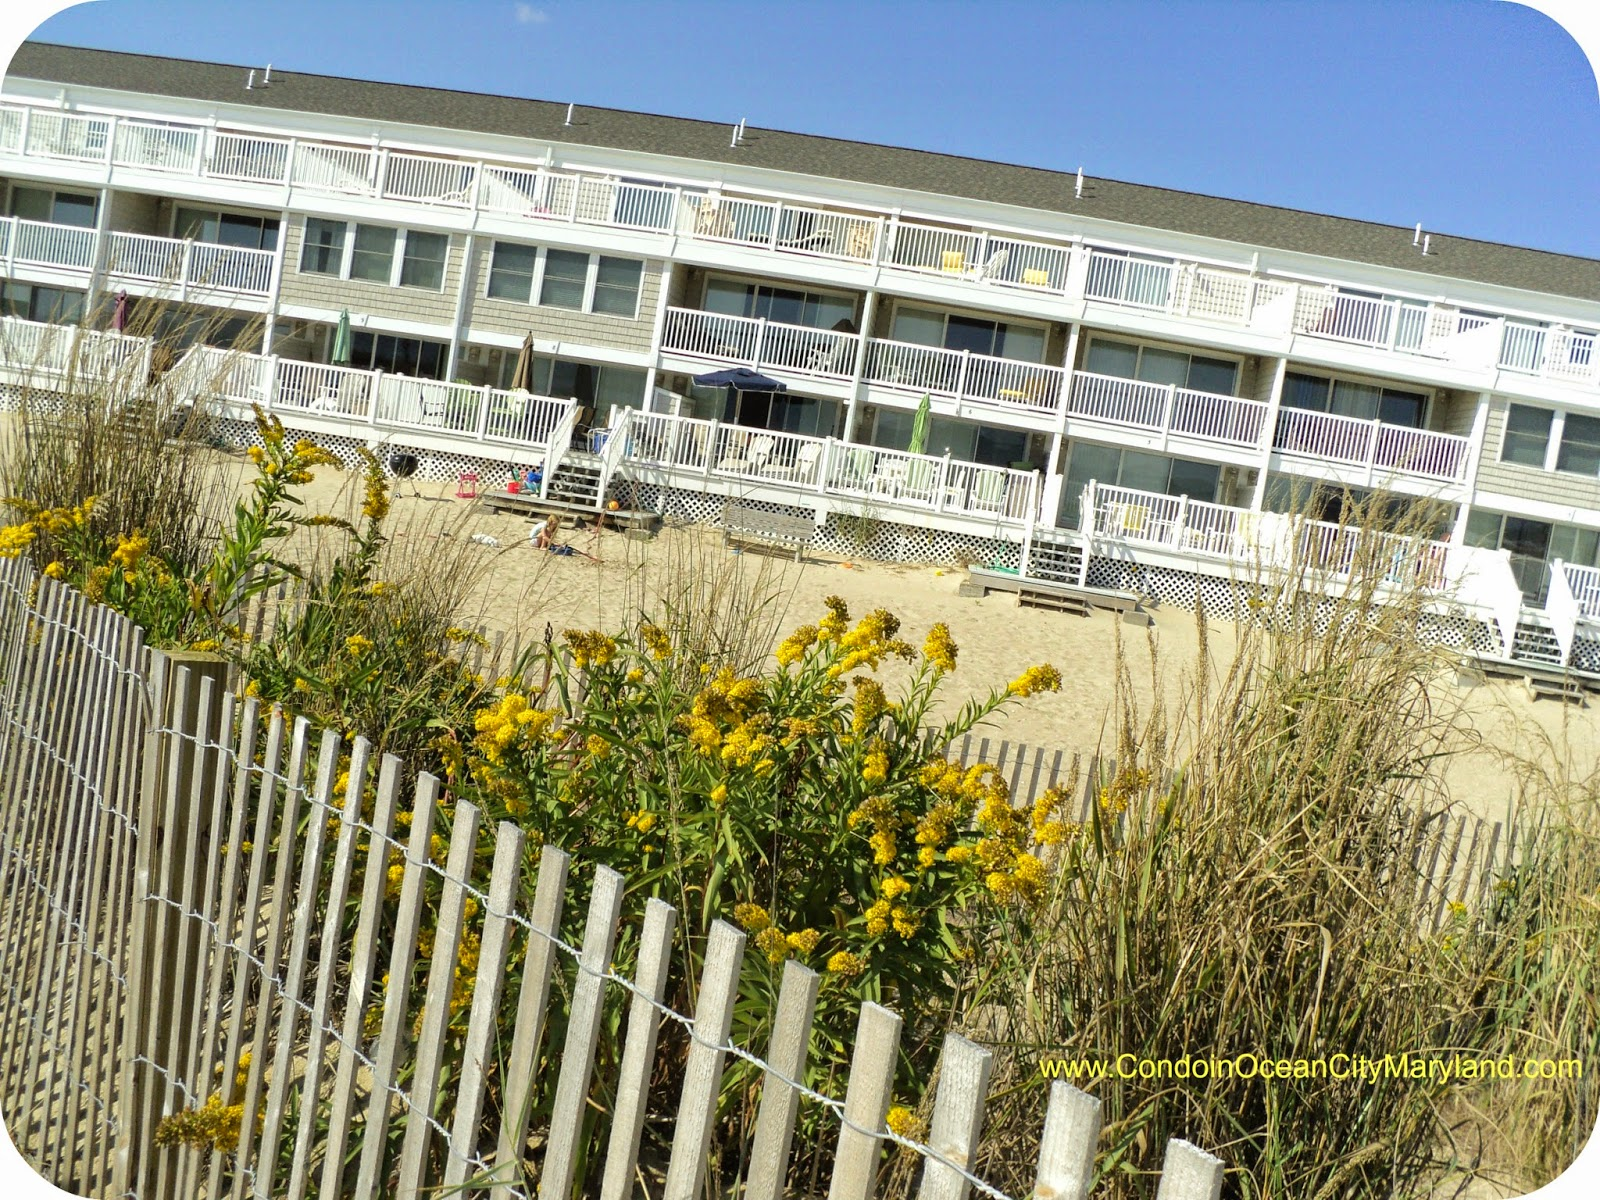 Fall color at the beach  www.condoinoceancitymaryland.com